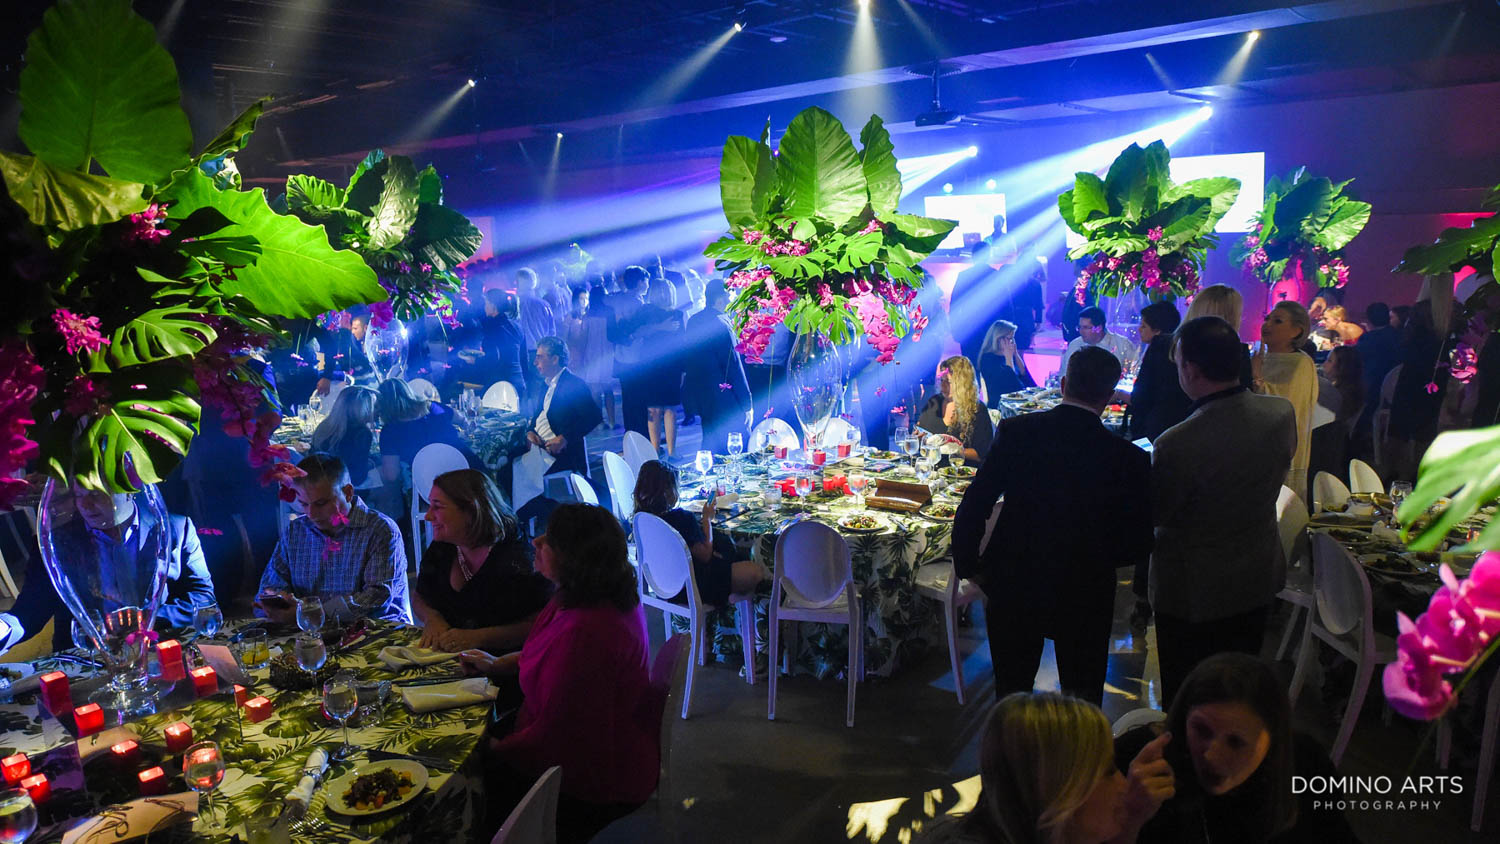 Tropical Theme Bat Mitzvah at Gallery of Amazing Things